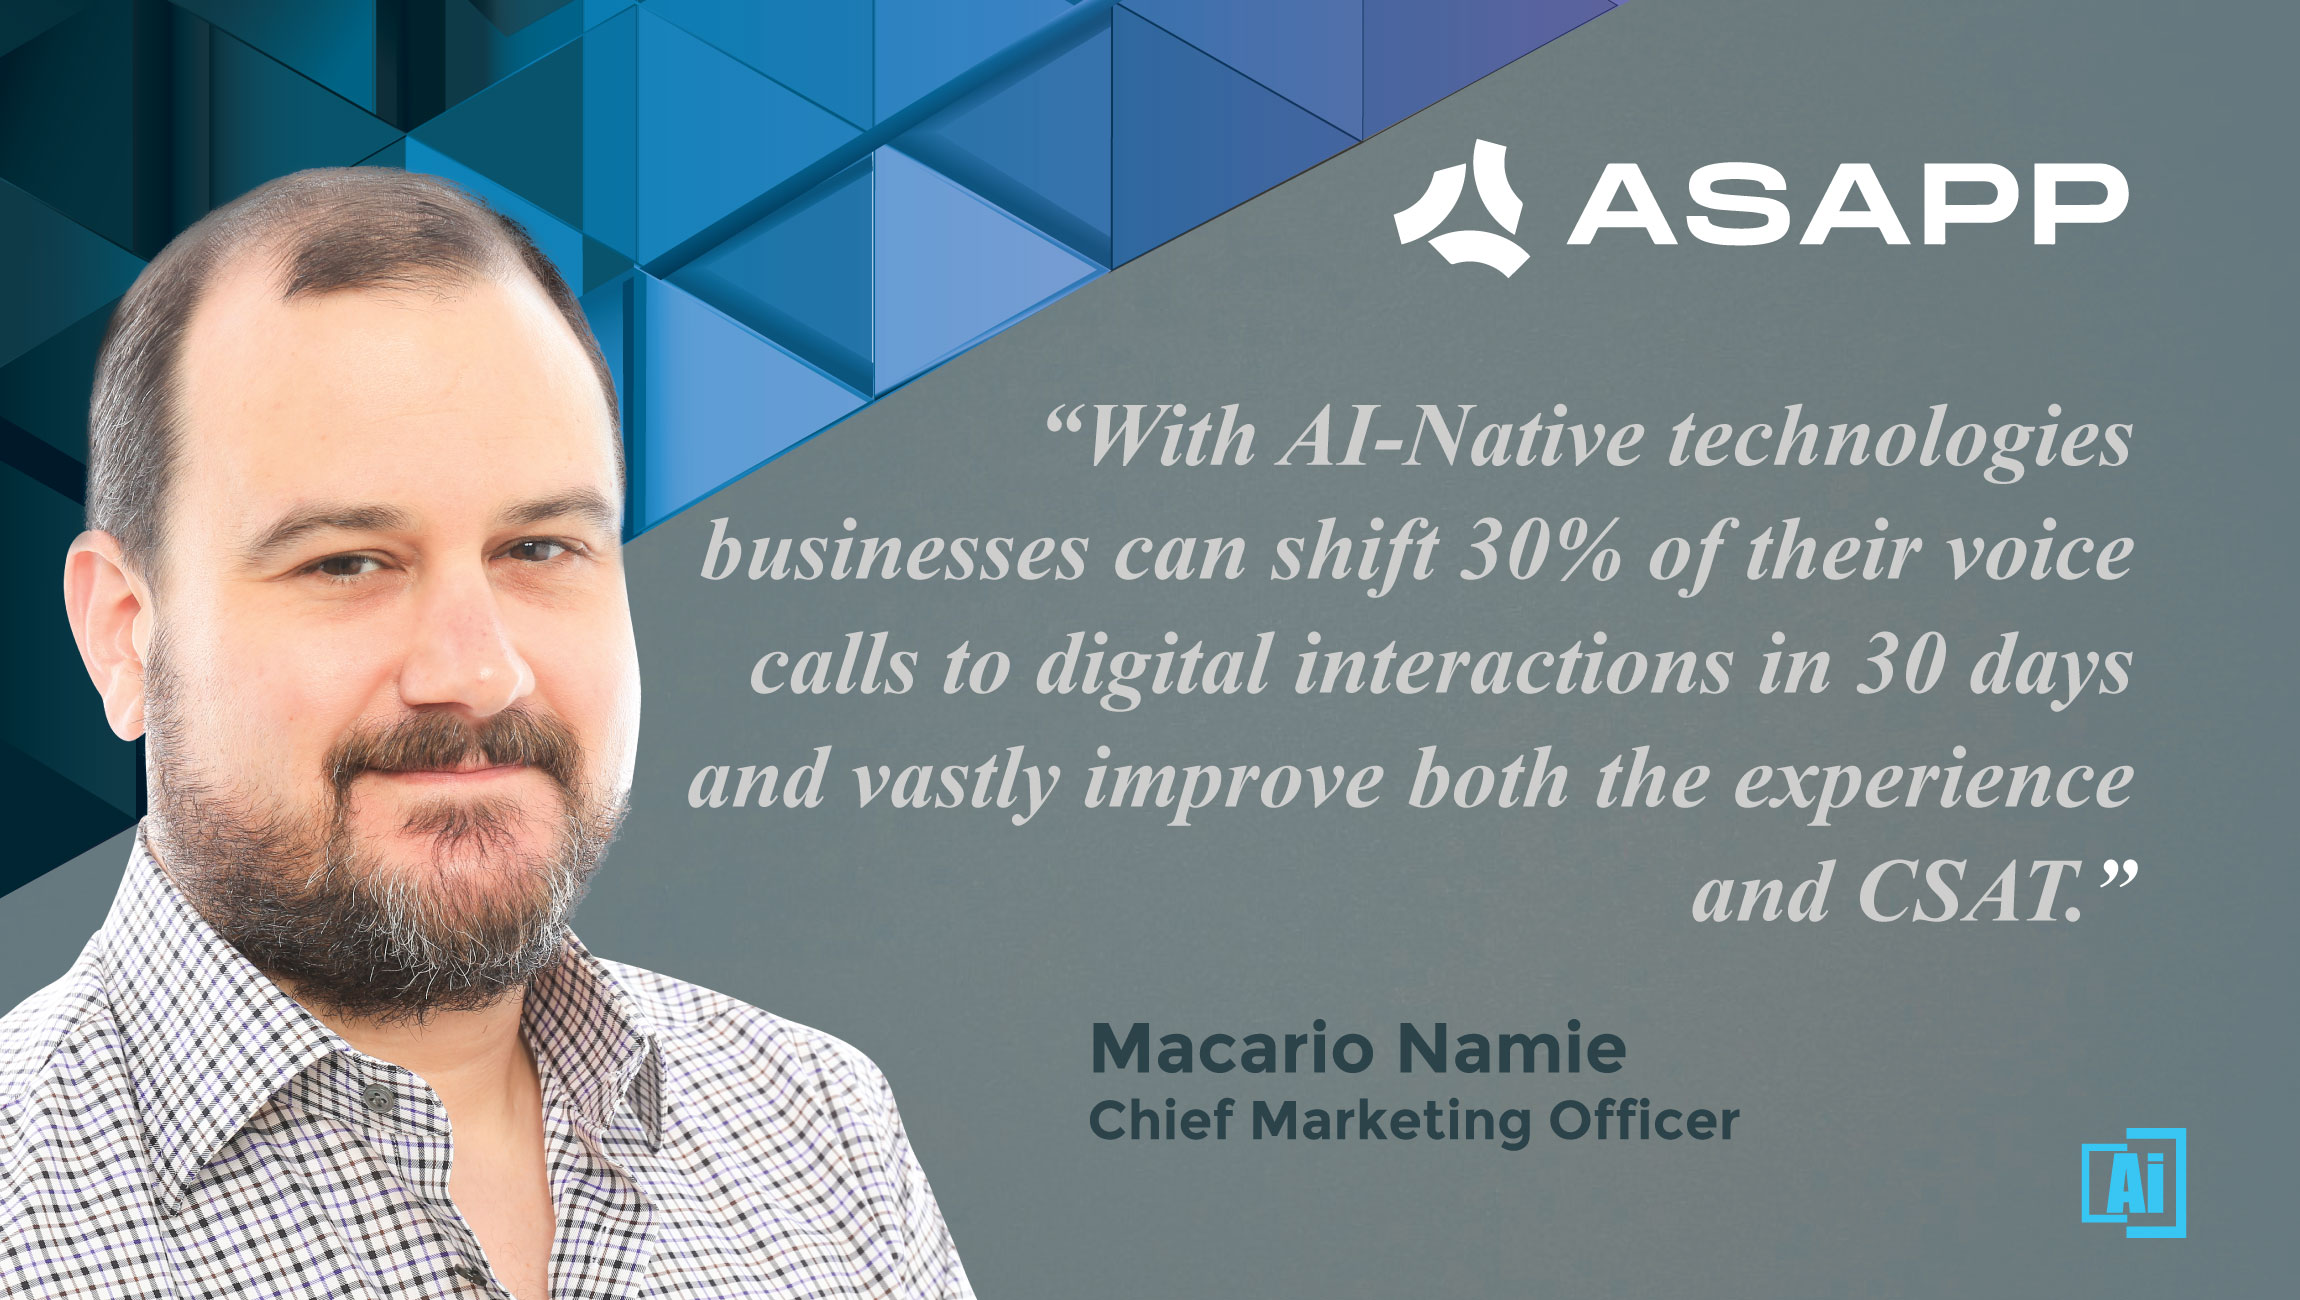 AiThority Interview With Macario Namie, CMO at ASAPP